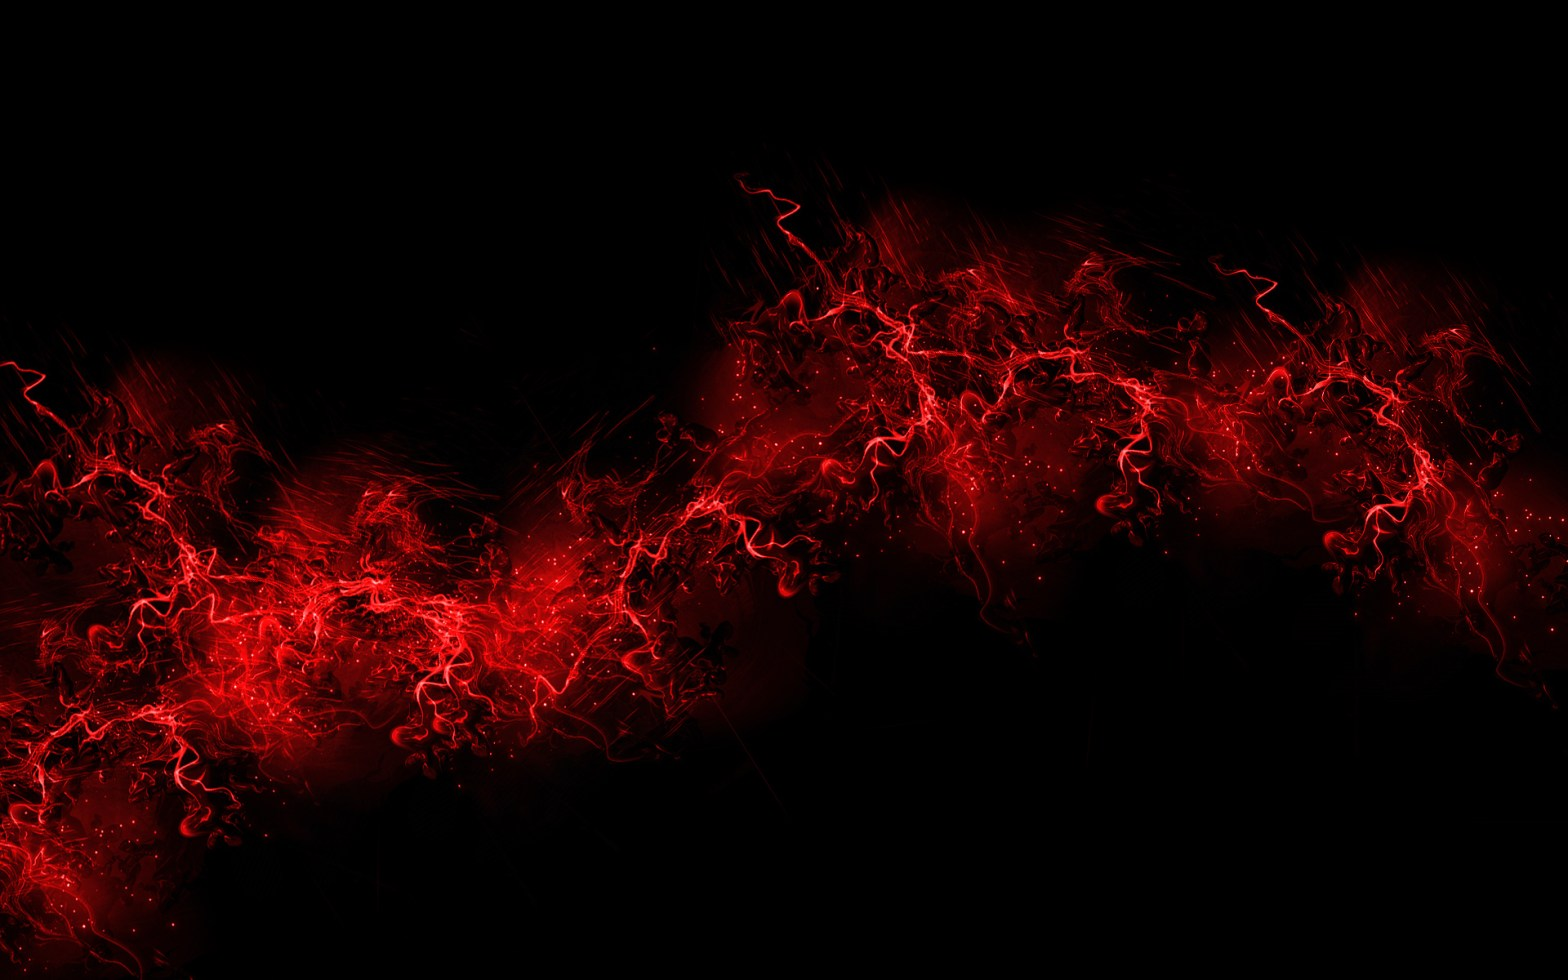 Red Flames on black background